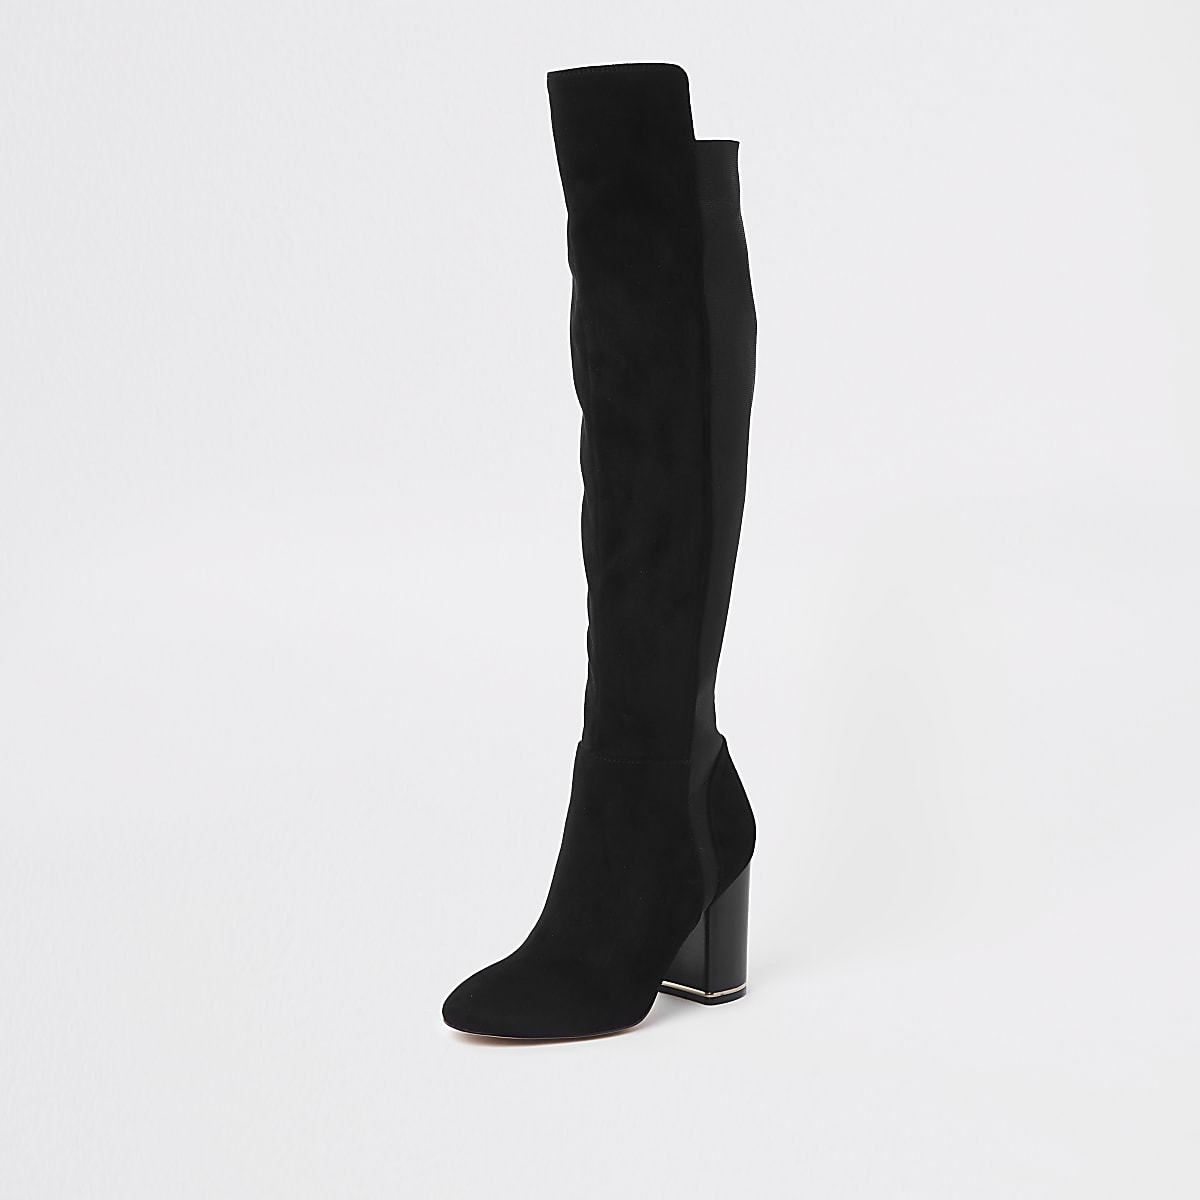 c3045b74aa7b Black suede over the knee block heel boots - Boots - Shoes   Boots ...